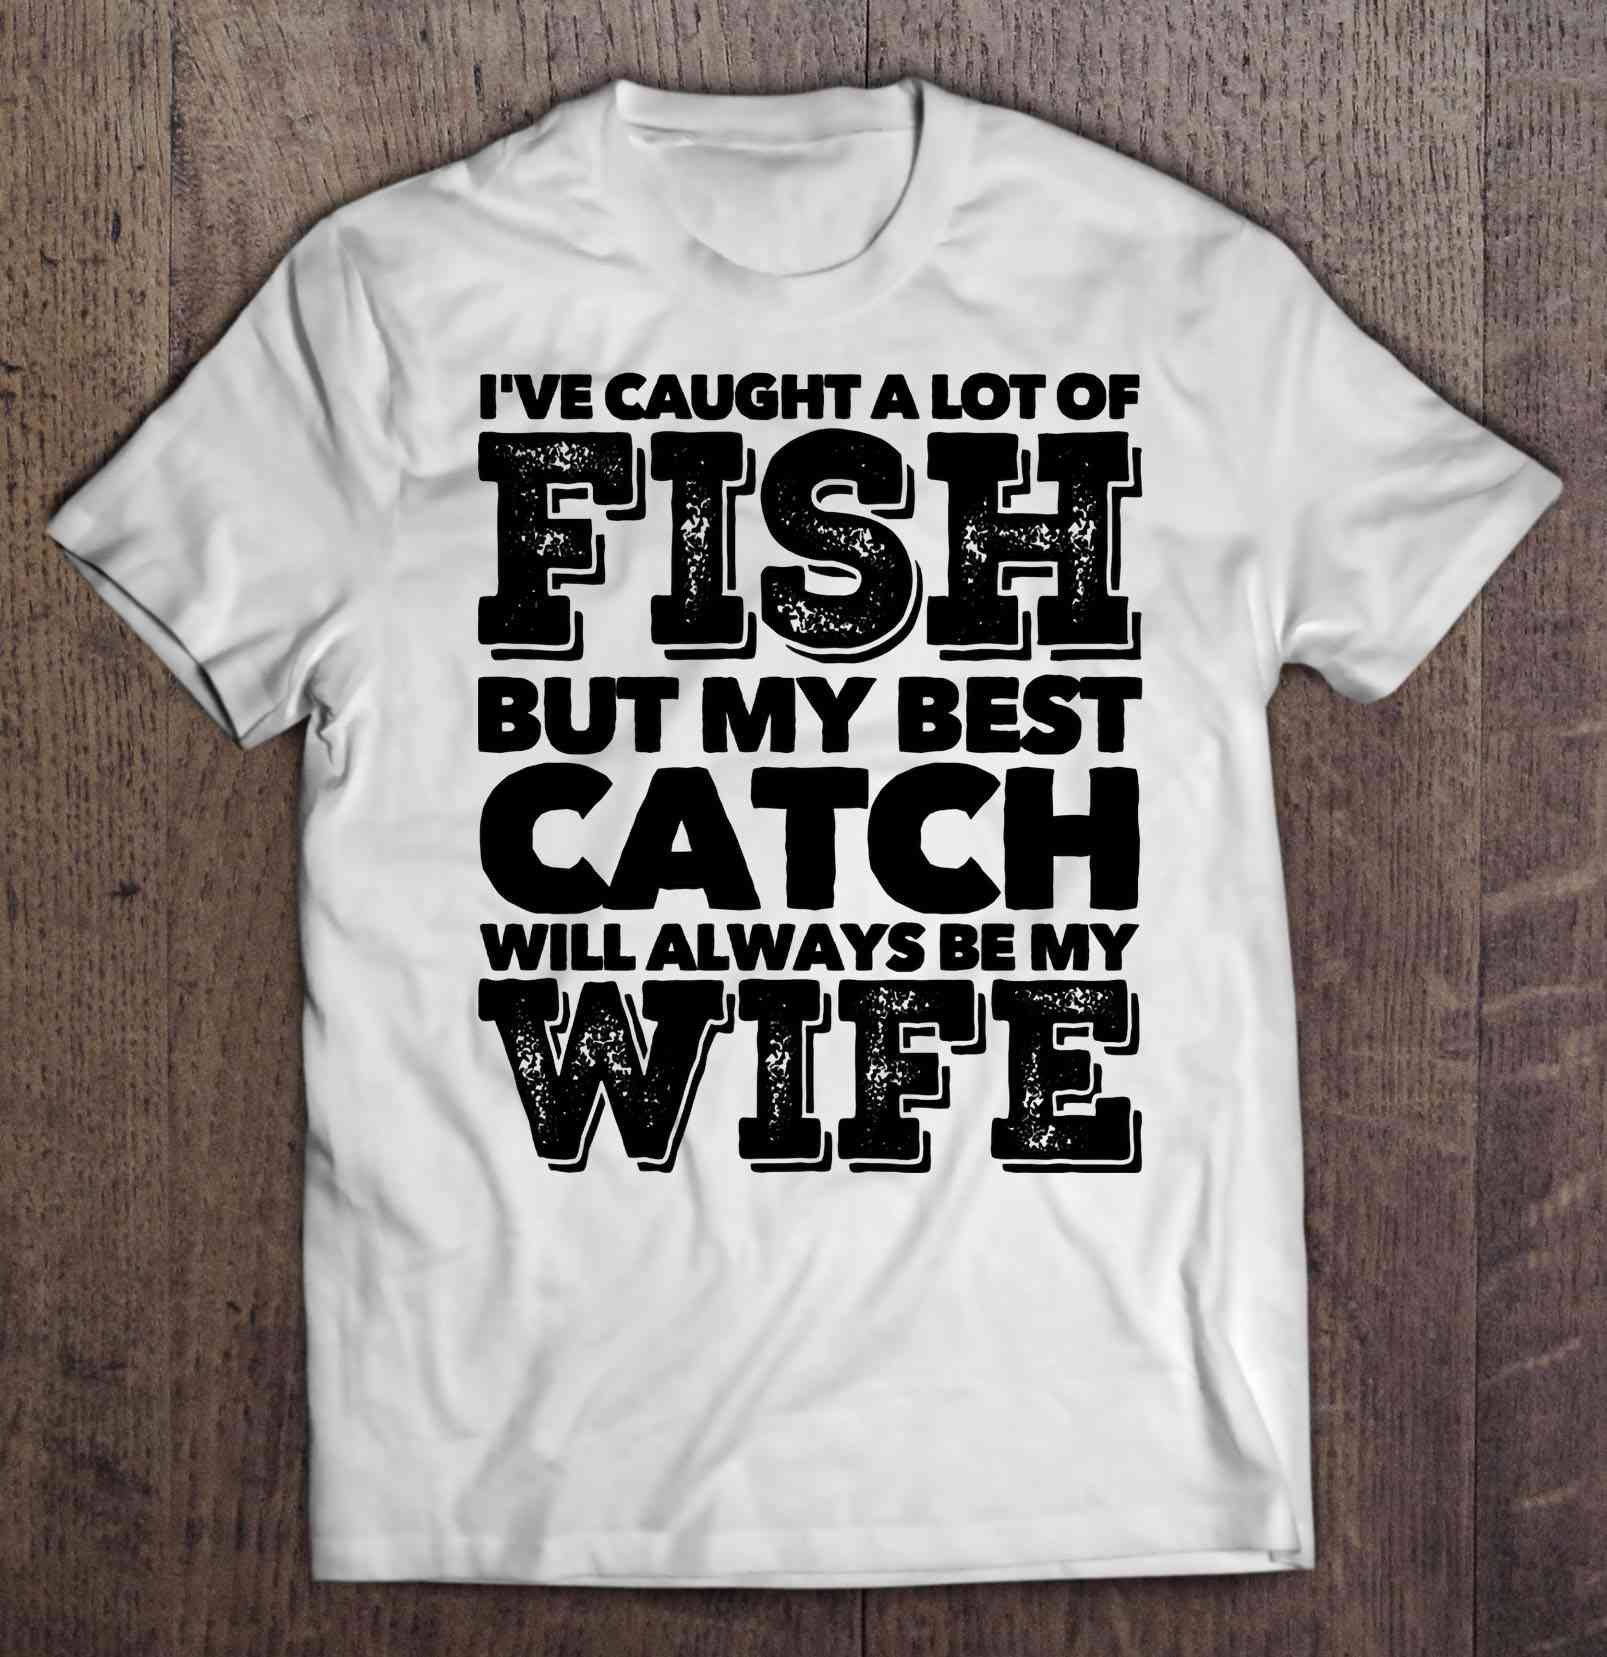 I'Ve Caught A Lot Of Fish But My Best Catch Will Always Be My Wife White Version T-Shirts image